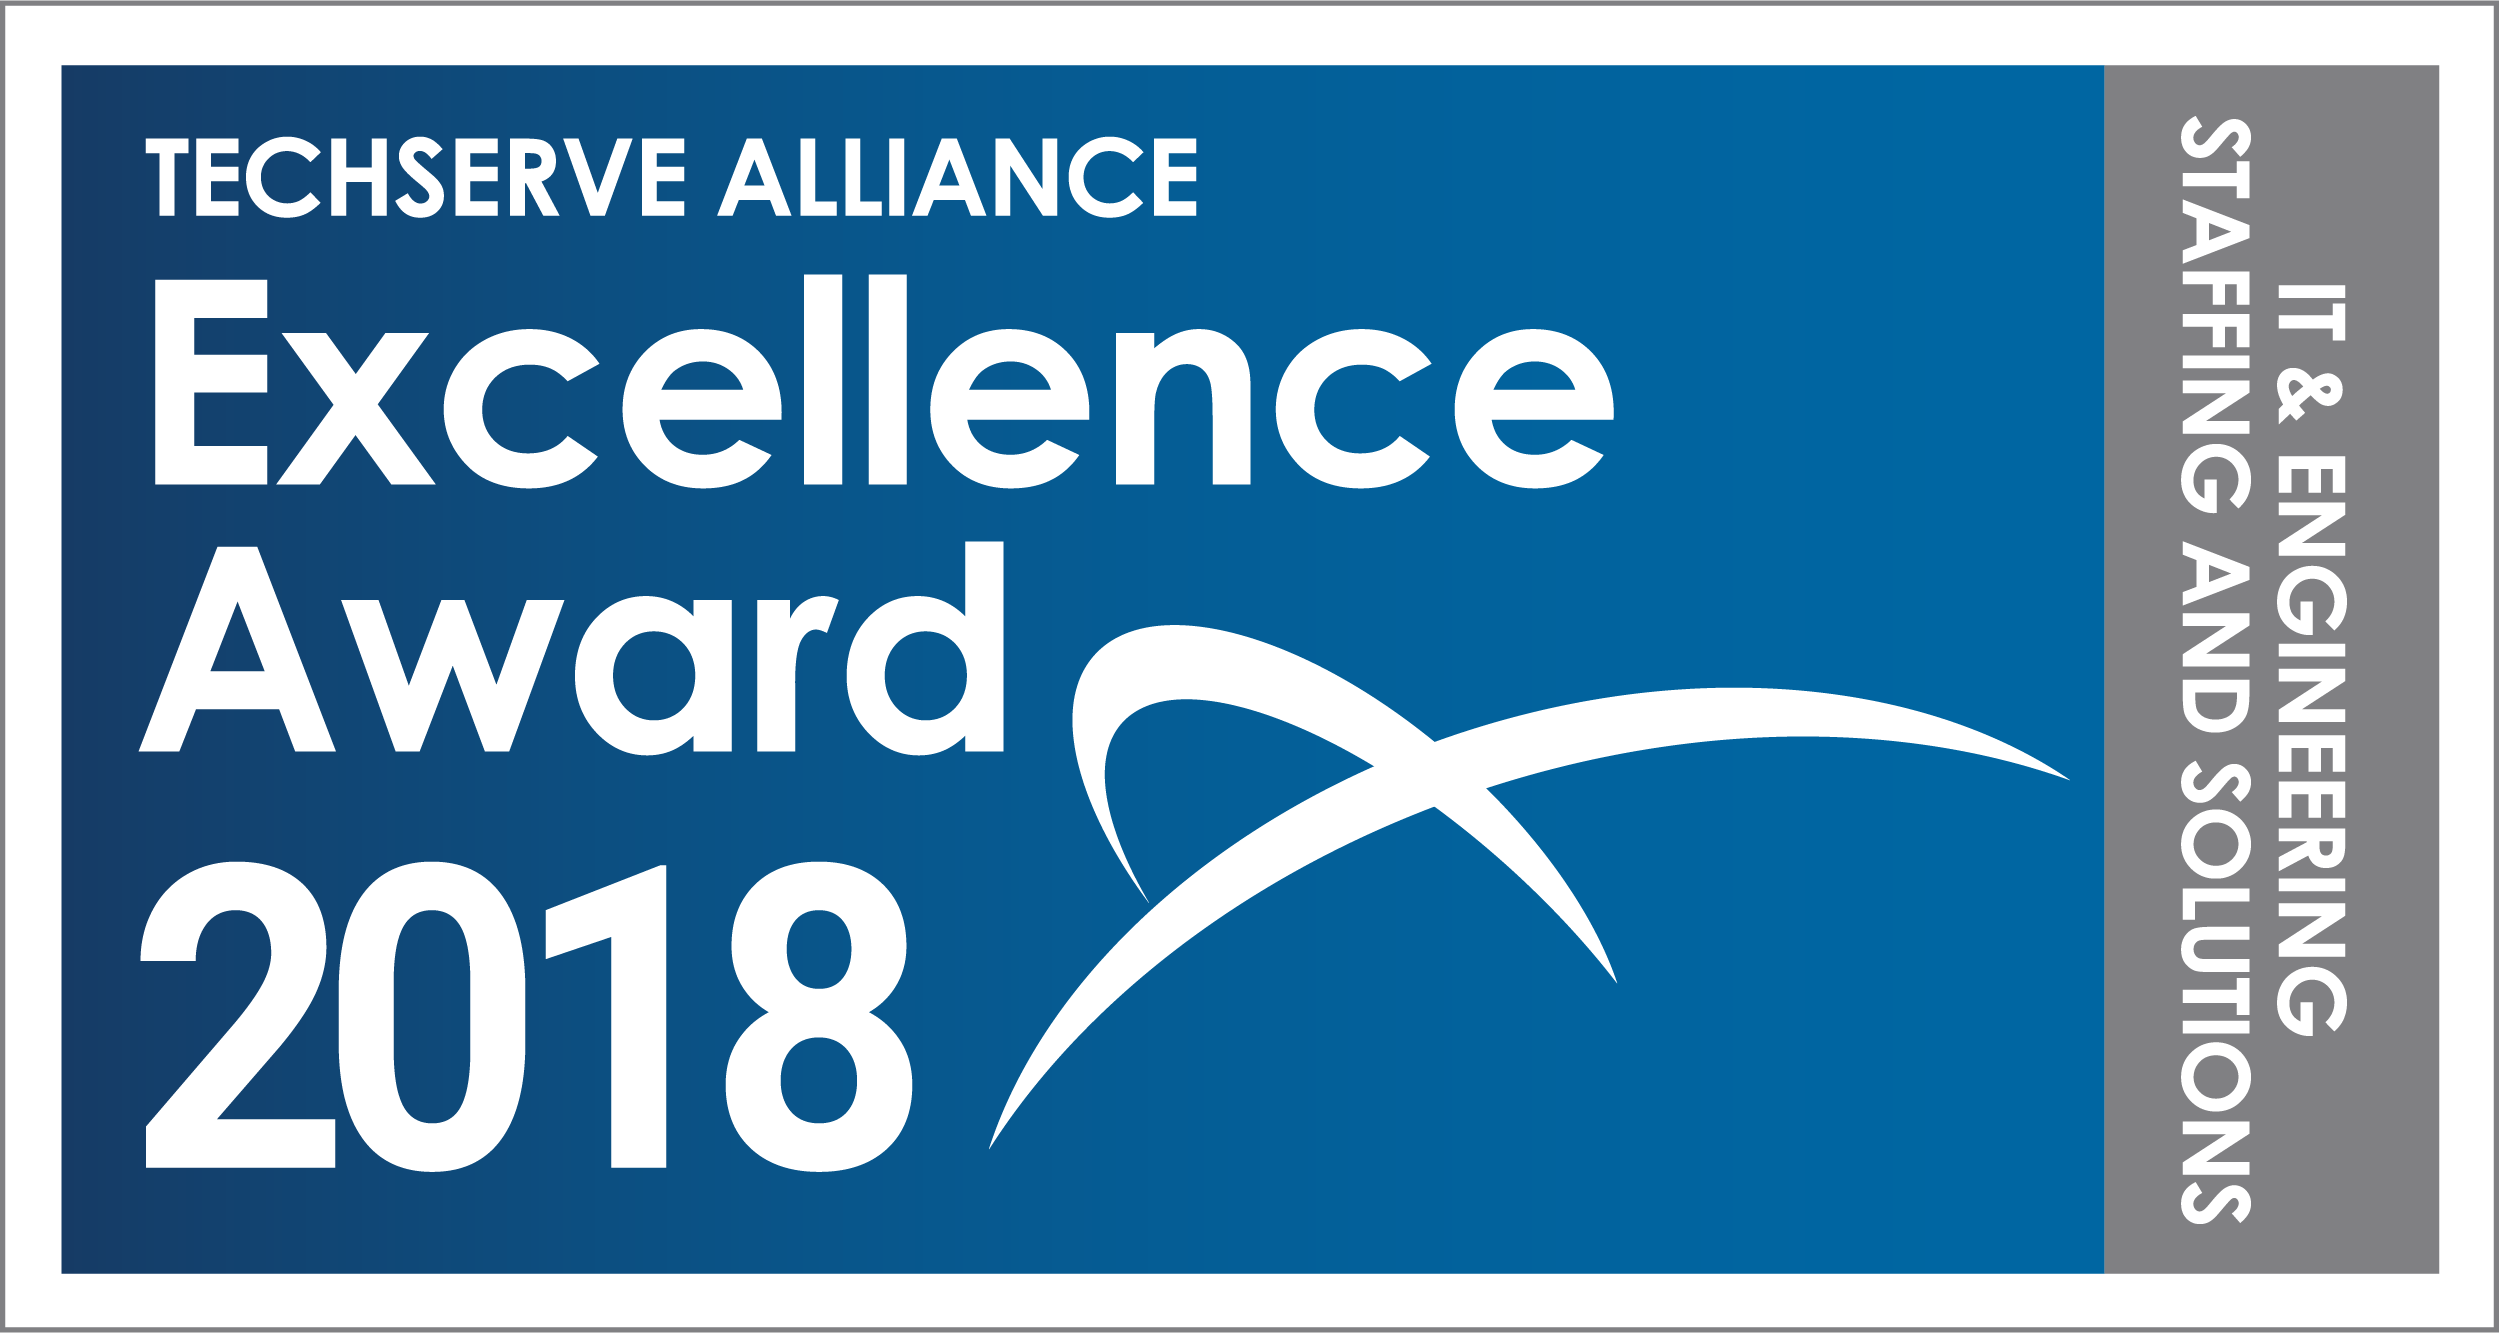 TechServe Alliance Excellence Award 2018